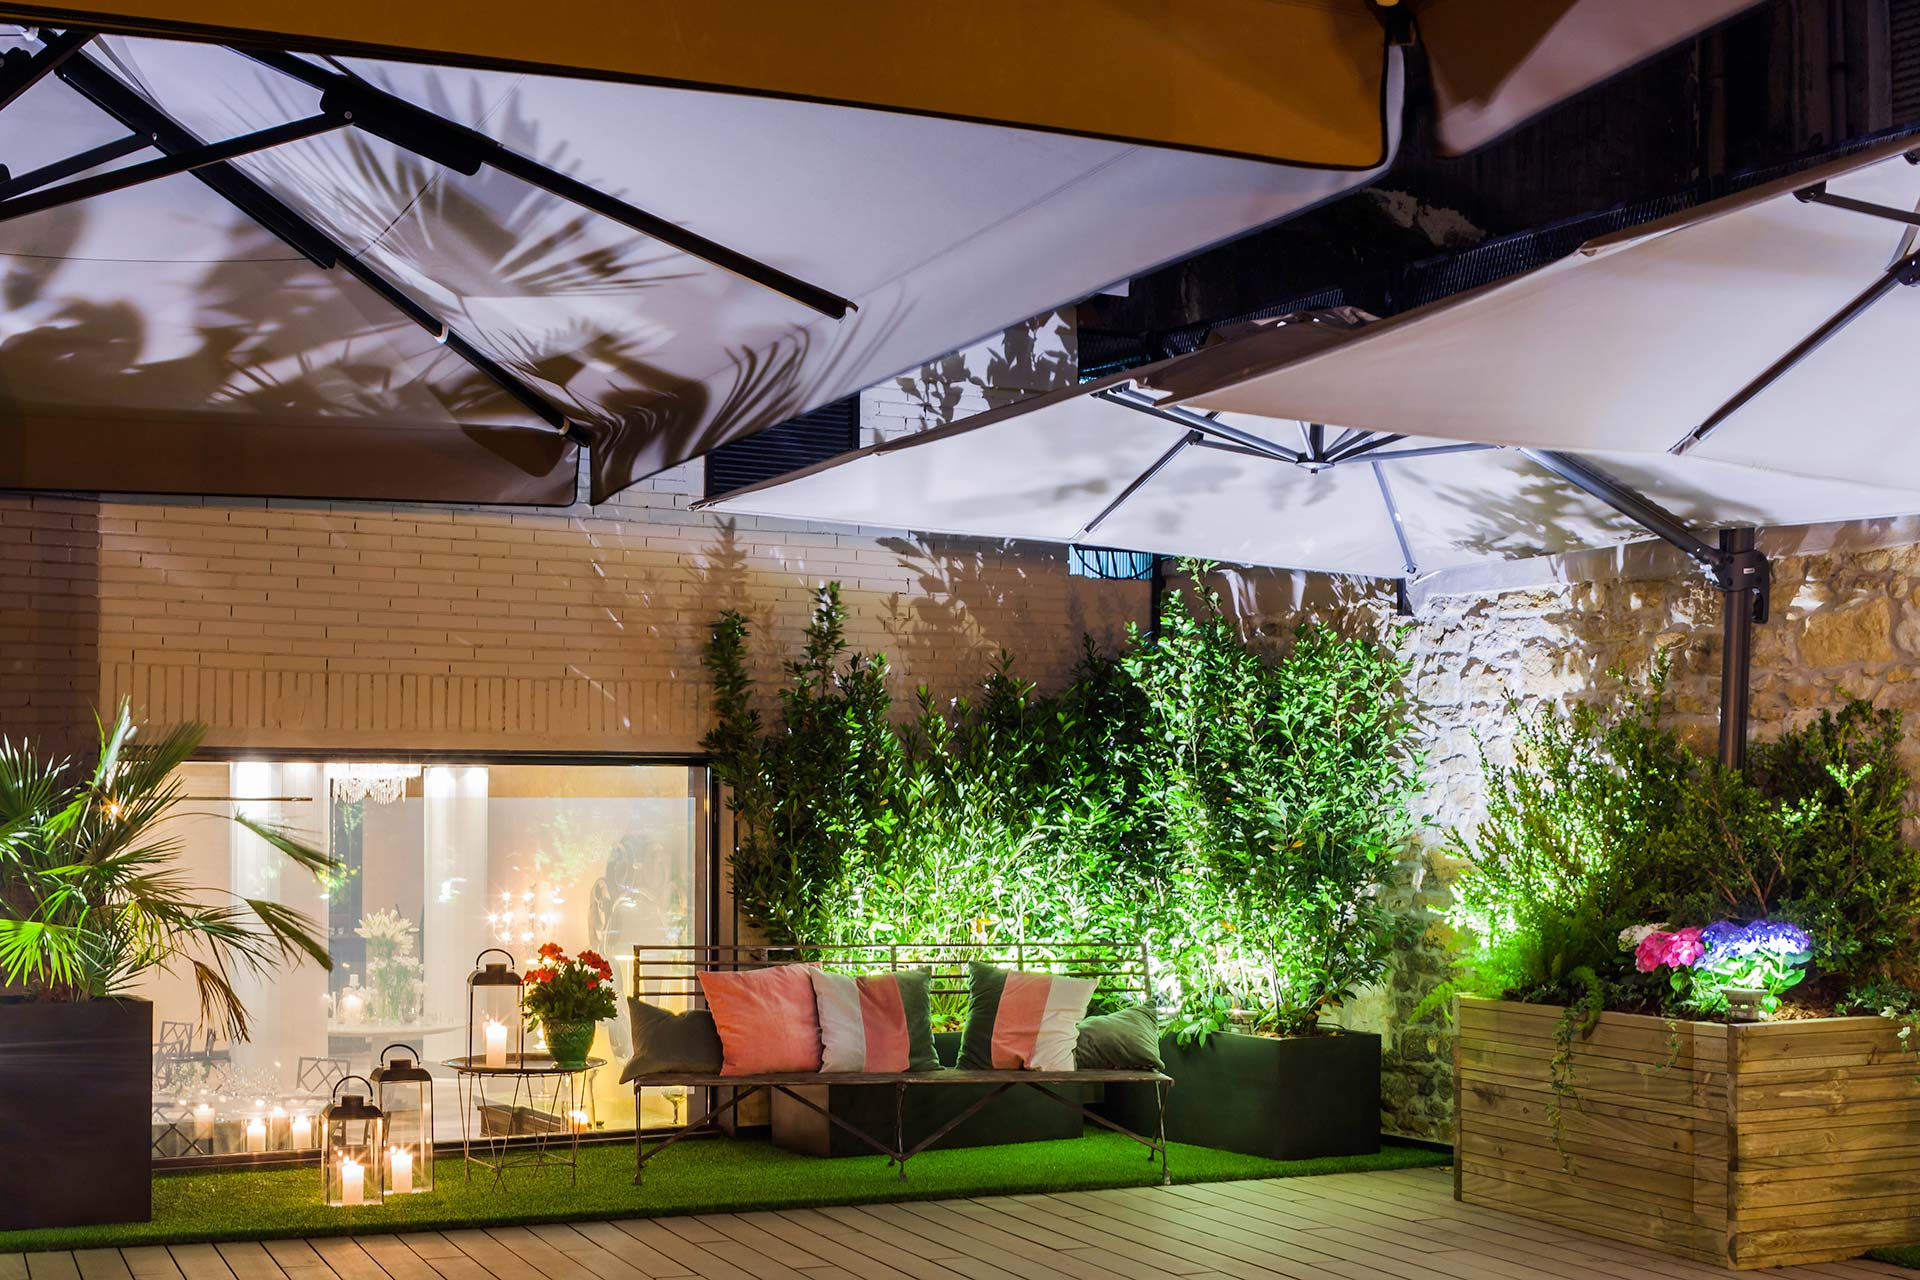 Weddings And Events For Companies In Oviedo